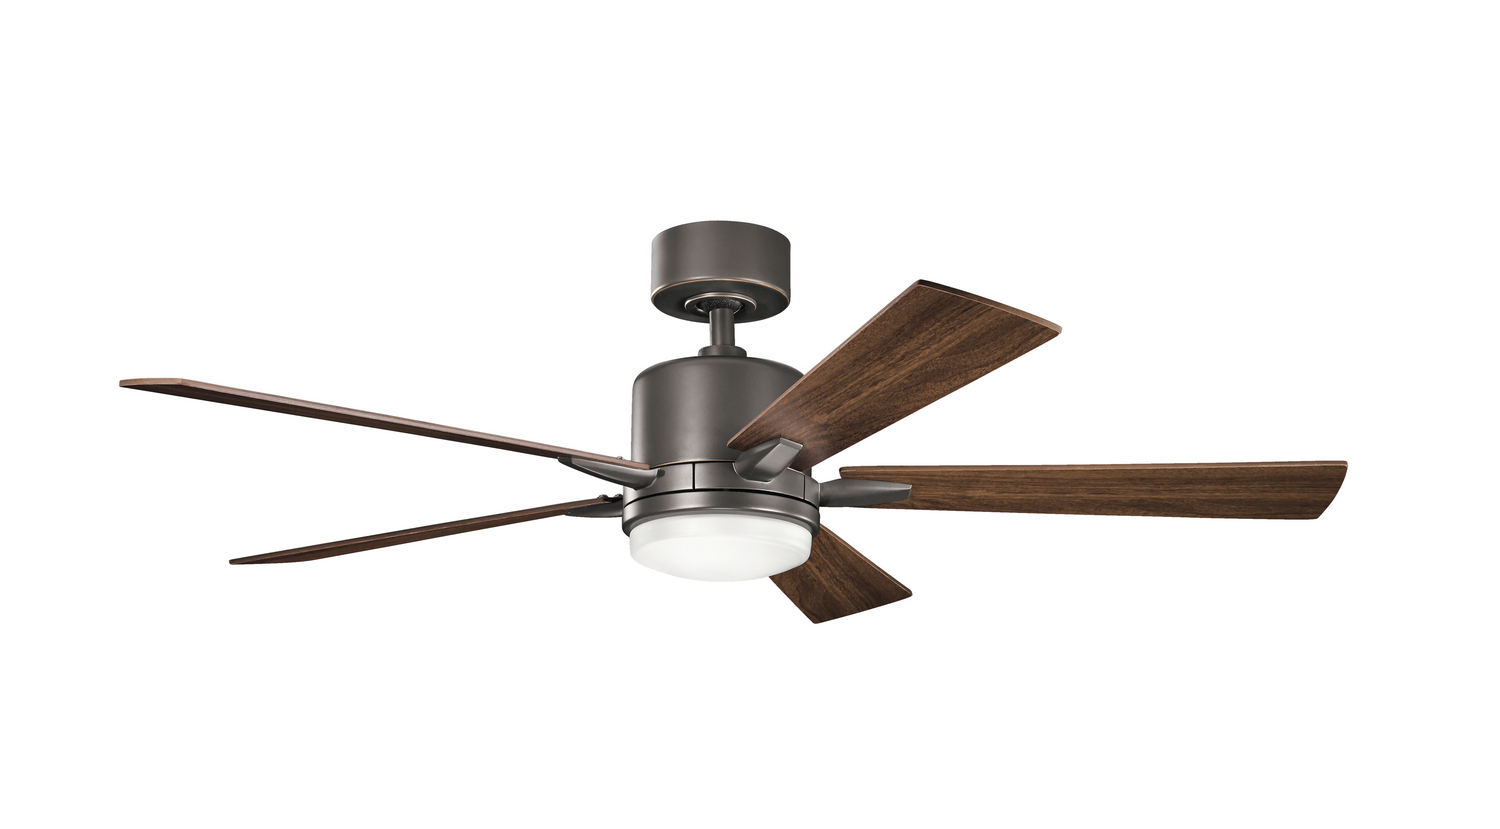 52 inchCeiling Fan from the Lucian collection by Kichler 330000OZ